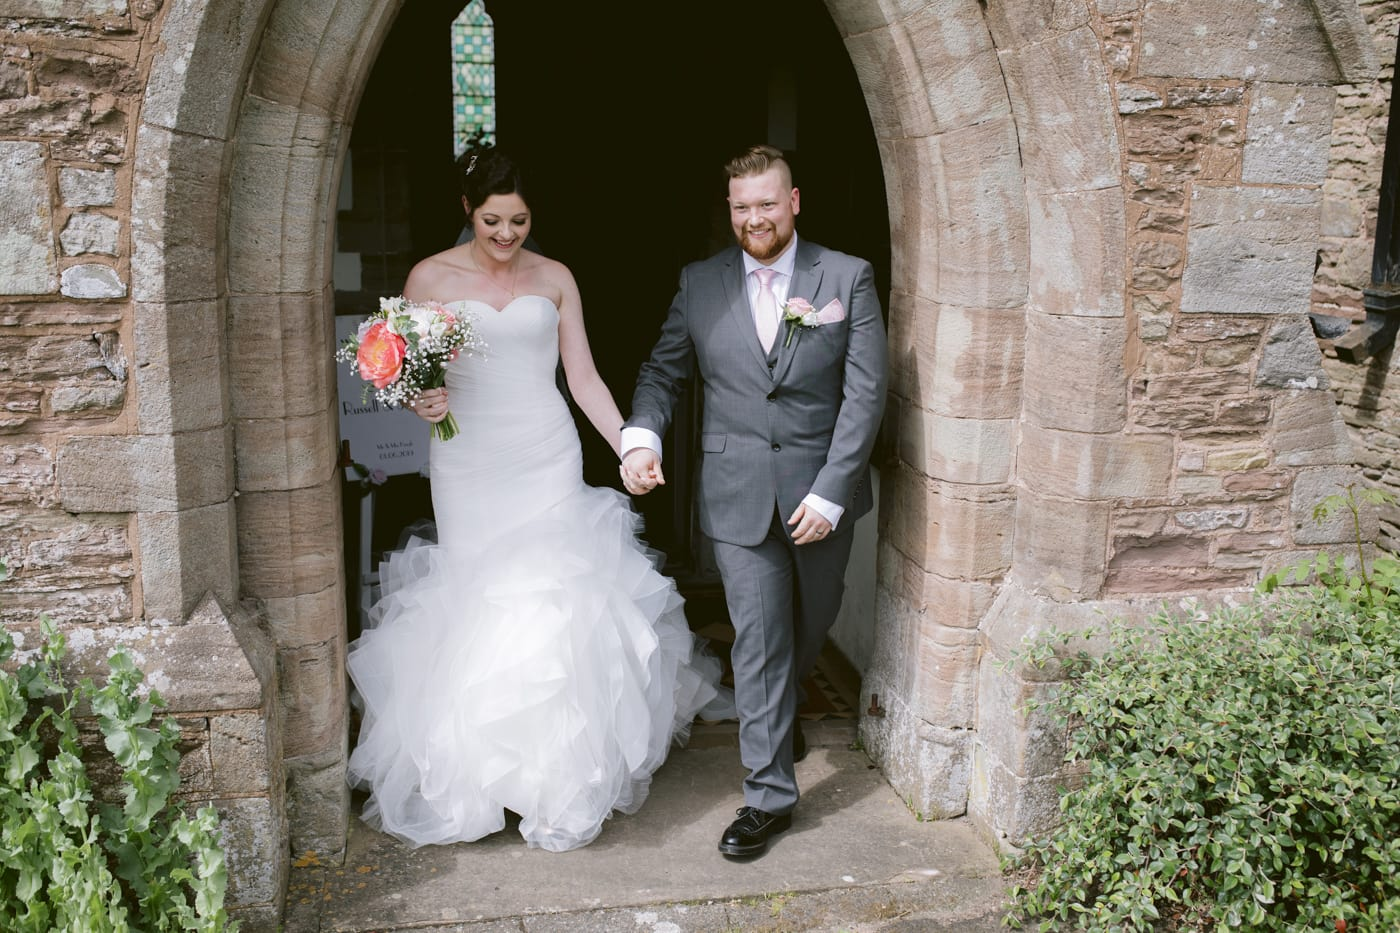 Bride and Groom Walking under the Church Archway Portrait Photography